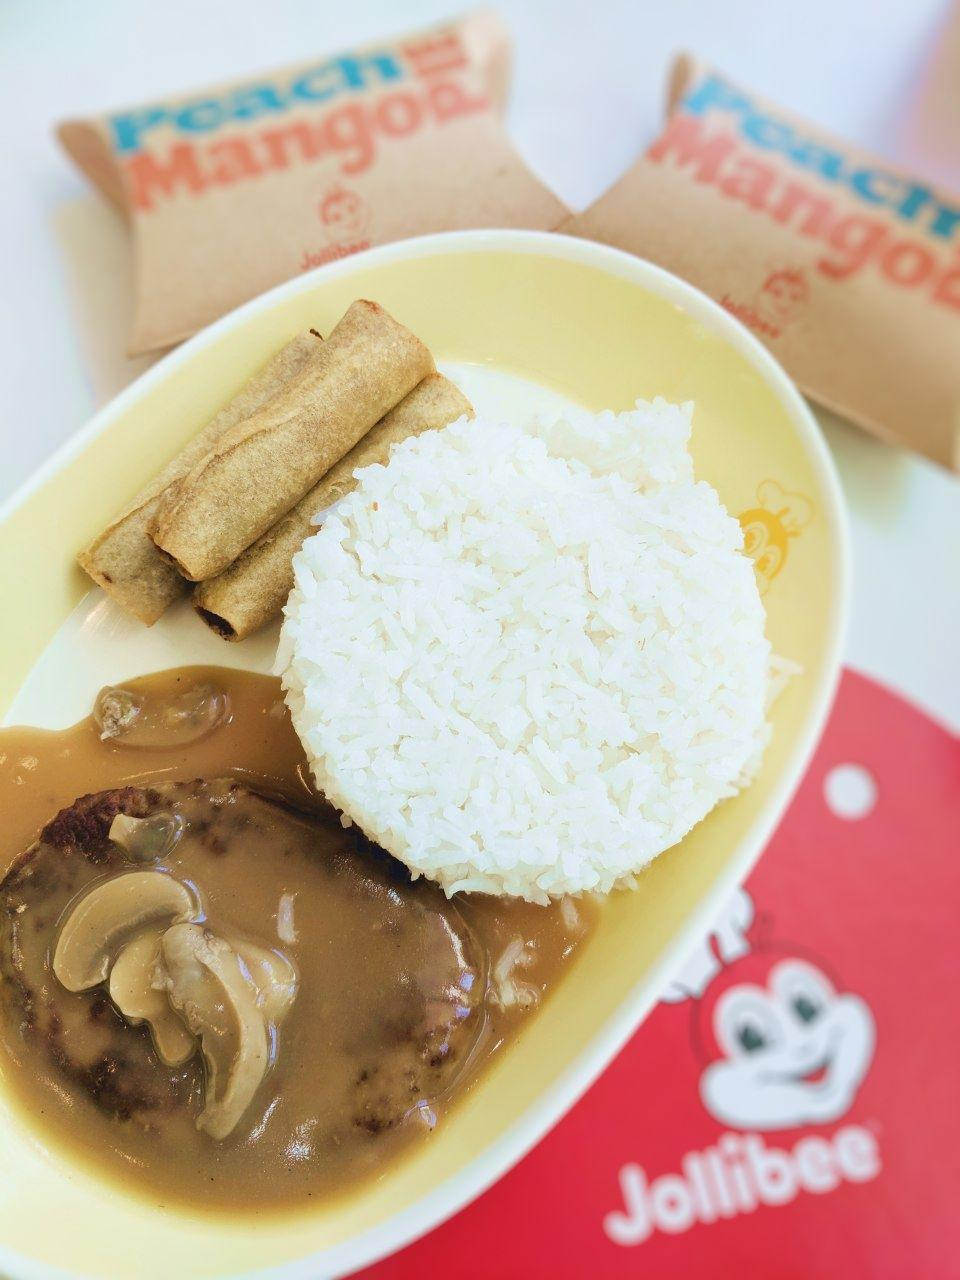 B1 1-Pc Burger Steak